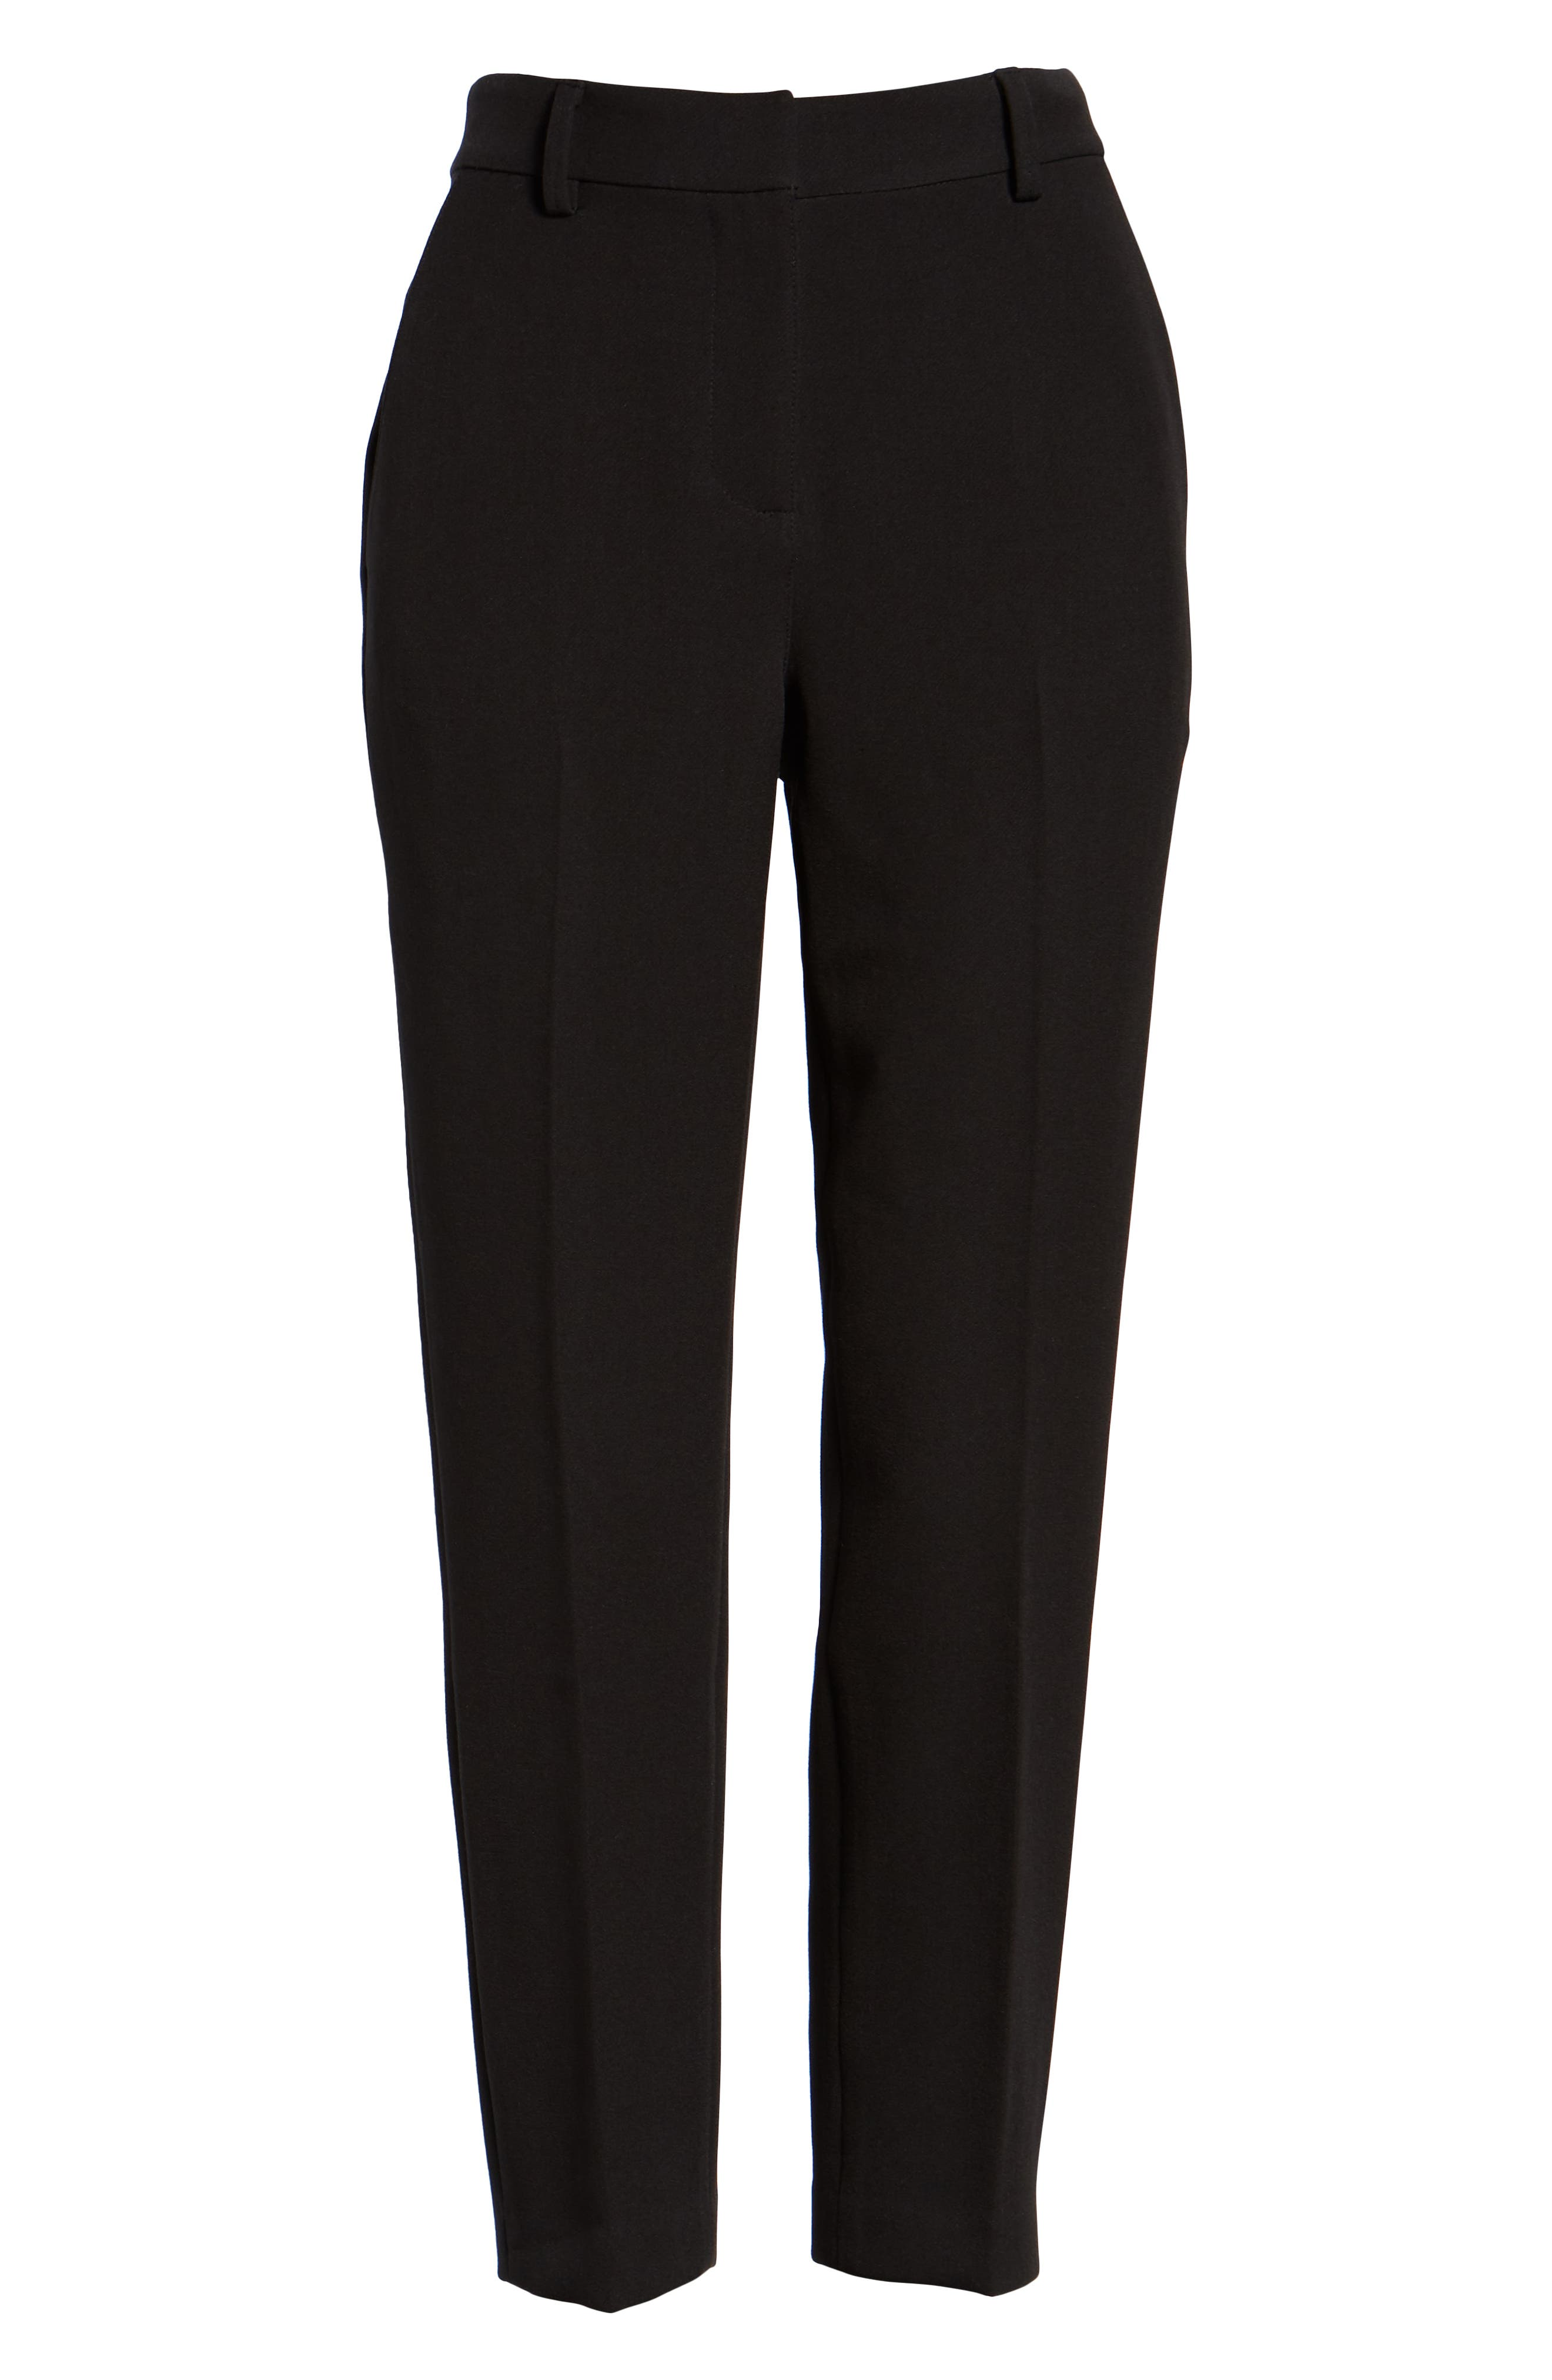 SOMETHING NAVY,                             Flat Front Trousers,                             Alternate thumbnail 7, color,                             BLACK